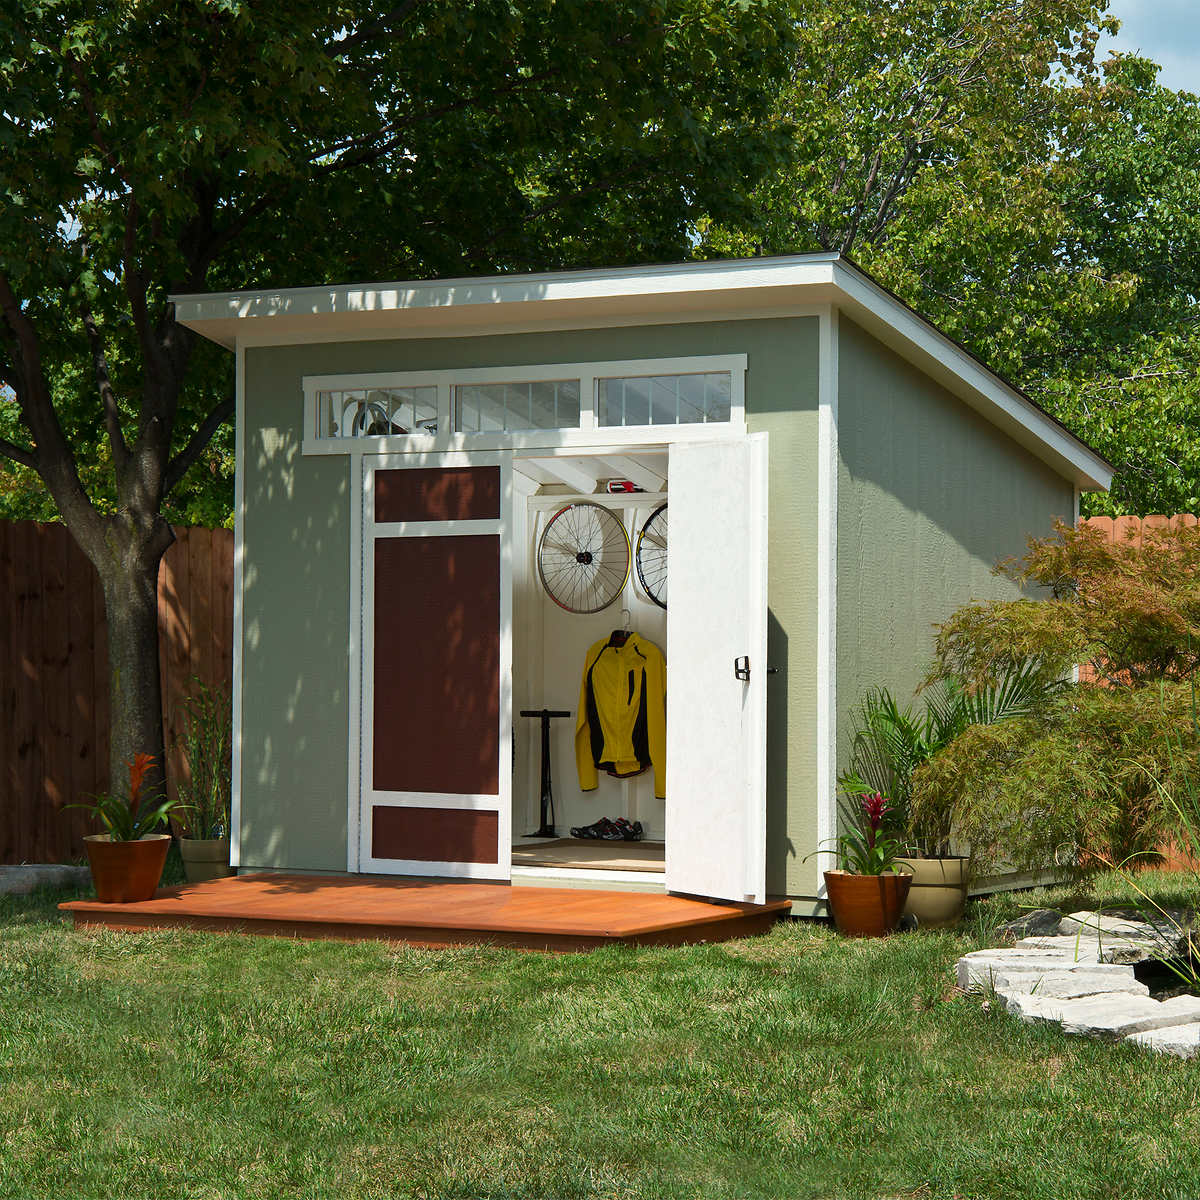 when you choose the colors you can already find in your natural garden for the sheds exterior you instantly assure that it will totally fit into the yard